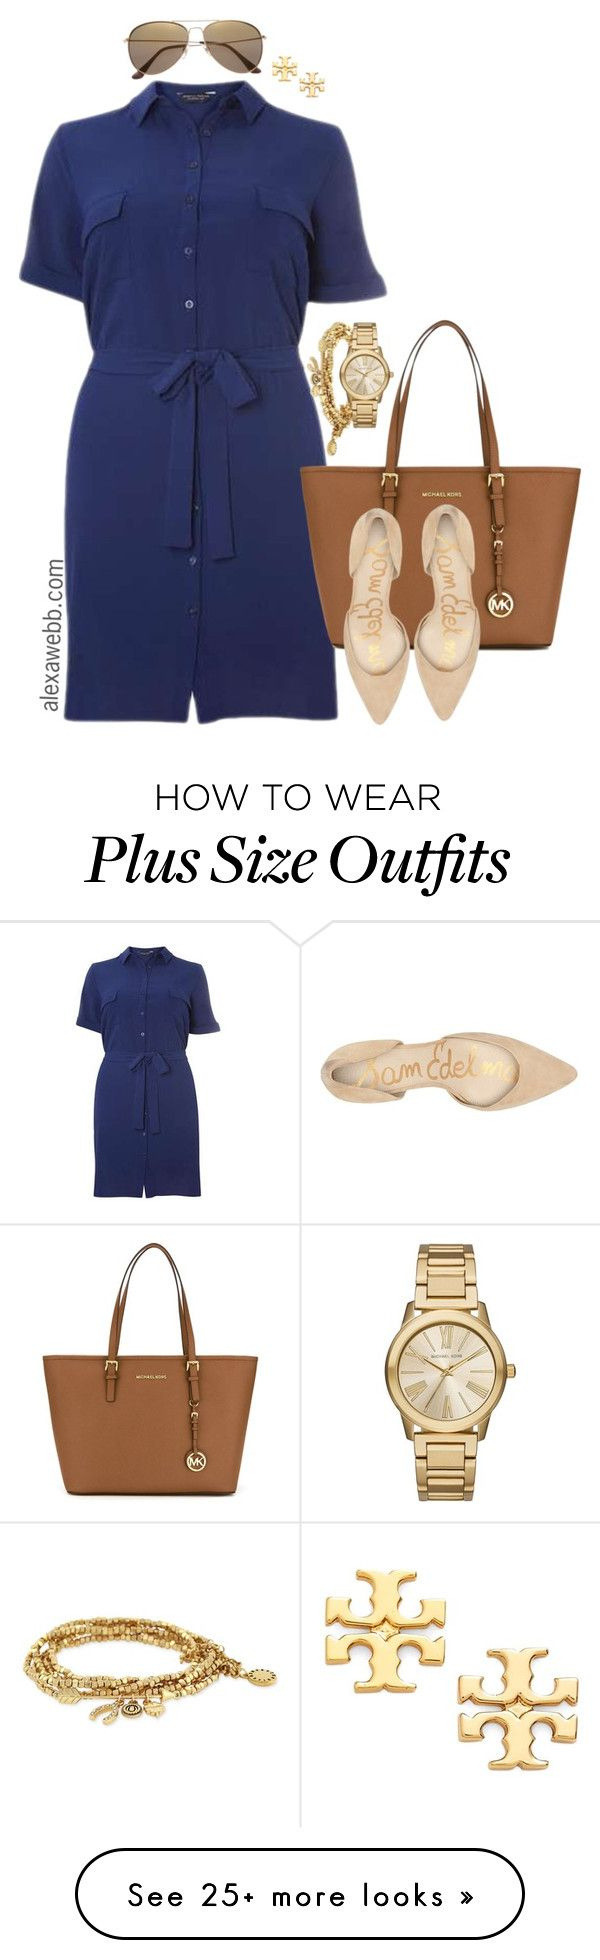 """Plus Size Summer Work Wear - Alexawebb.com"" by alexawebb on Polyvore featuring Dorothy Perkins, MICHAEL Michael Kors, Sam Edelman, H&M, BCBGeneration, Michael Kors, Tory Burch, outfit, plussize and plussizefashion"